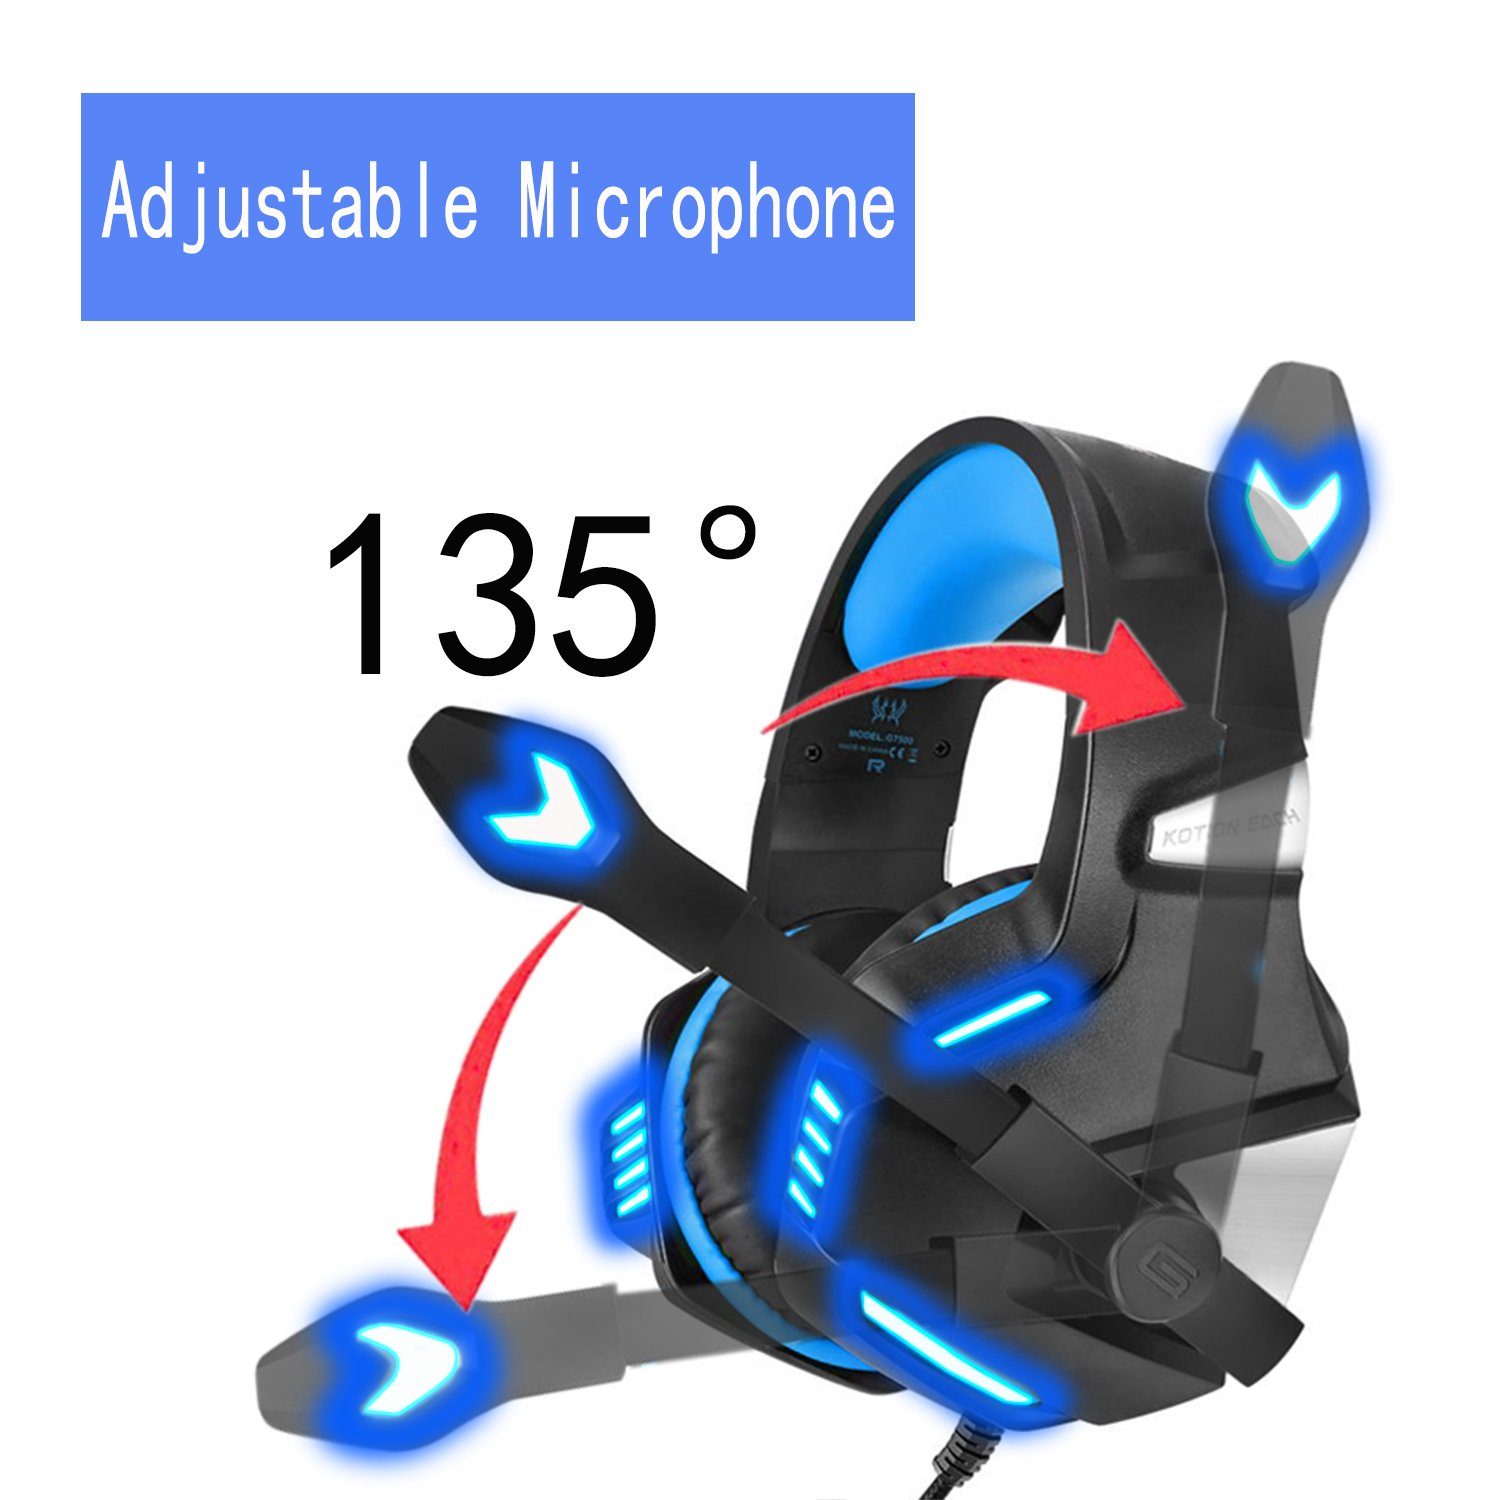 KJ-KayJI Gaming Headset for PS4 Xbox One Over Ear Gaming Headphones with Mic Stereo Bass Surround Noise Reduction,LED Lights and Volume Control for Laptop PC Mac IPad Computer Smartphones Xbox (Blue) by KJ-KayJI (Image #2)